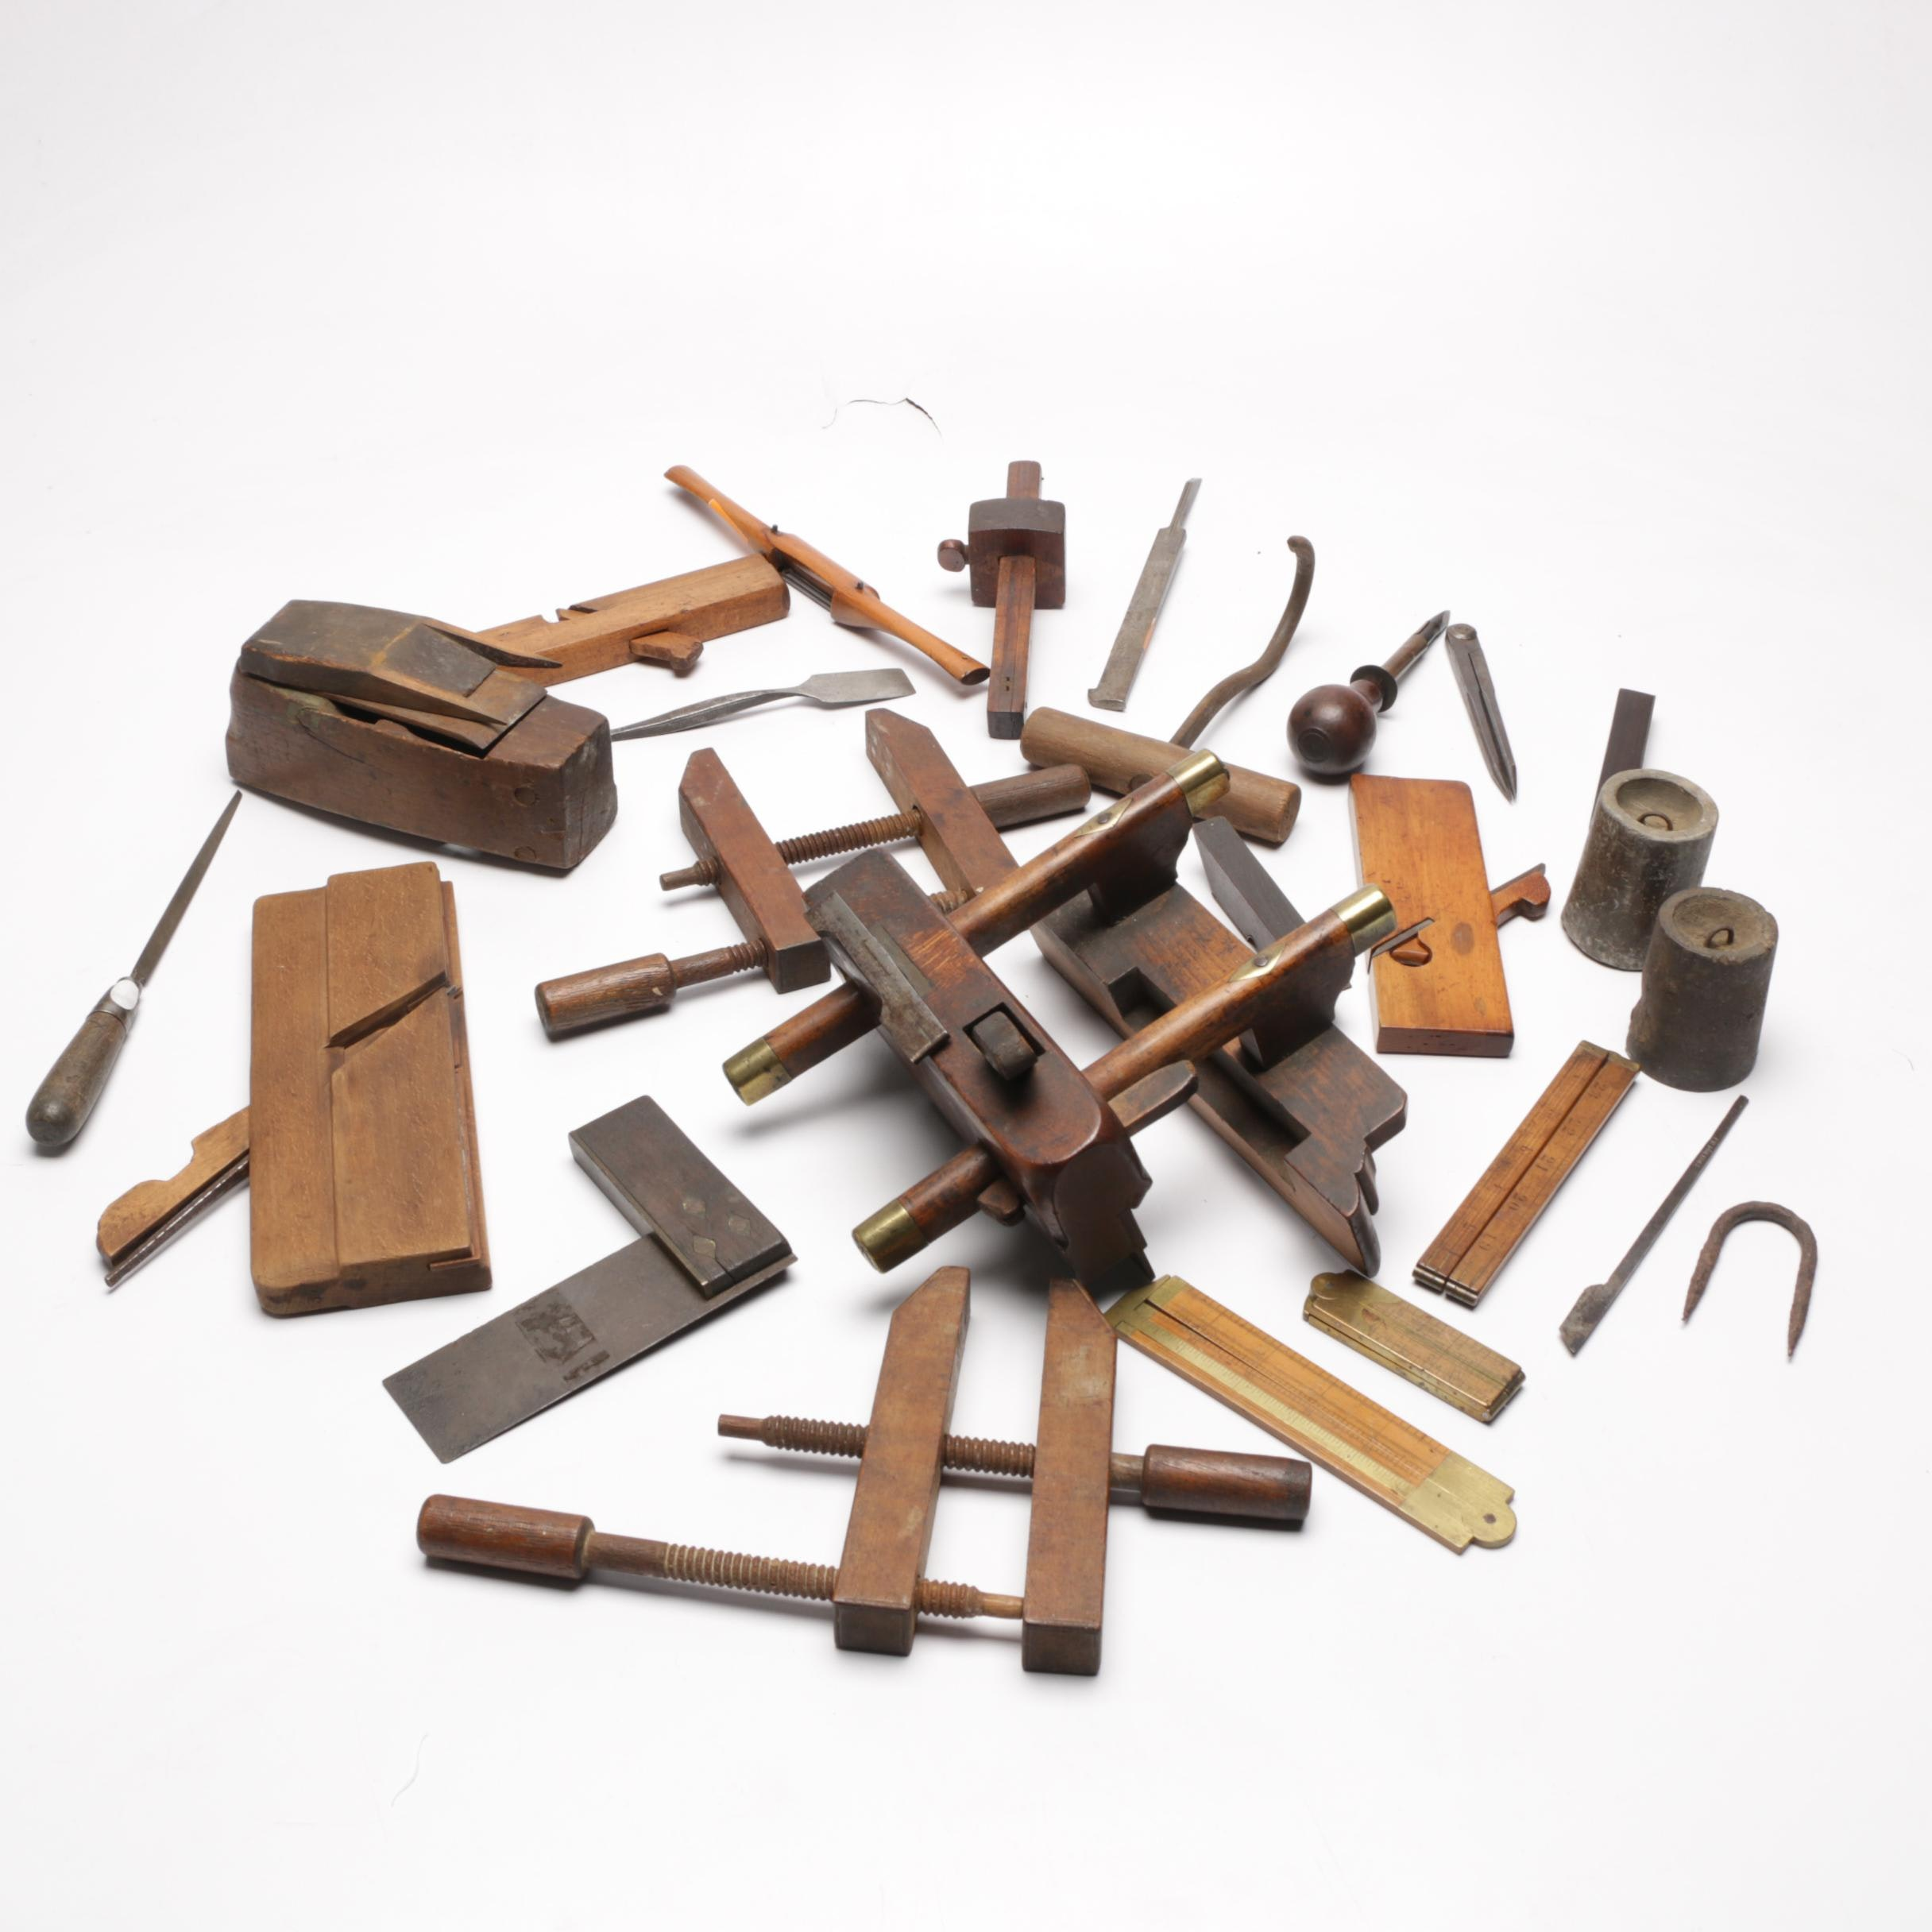 Antique and Vintage Woodworking Planes, Tools, Clamps and More